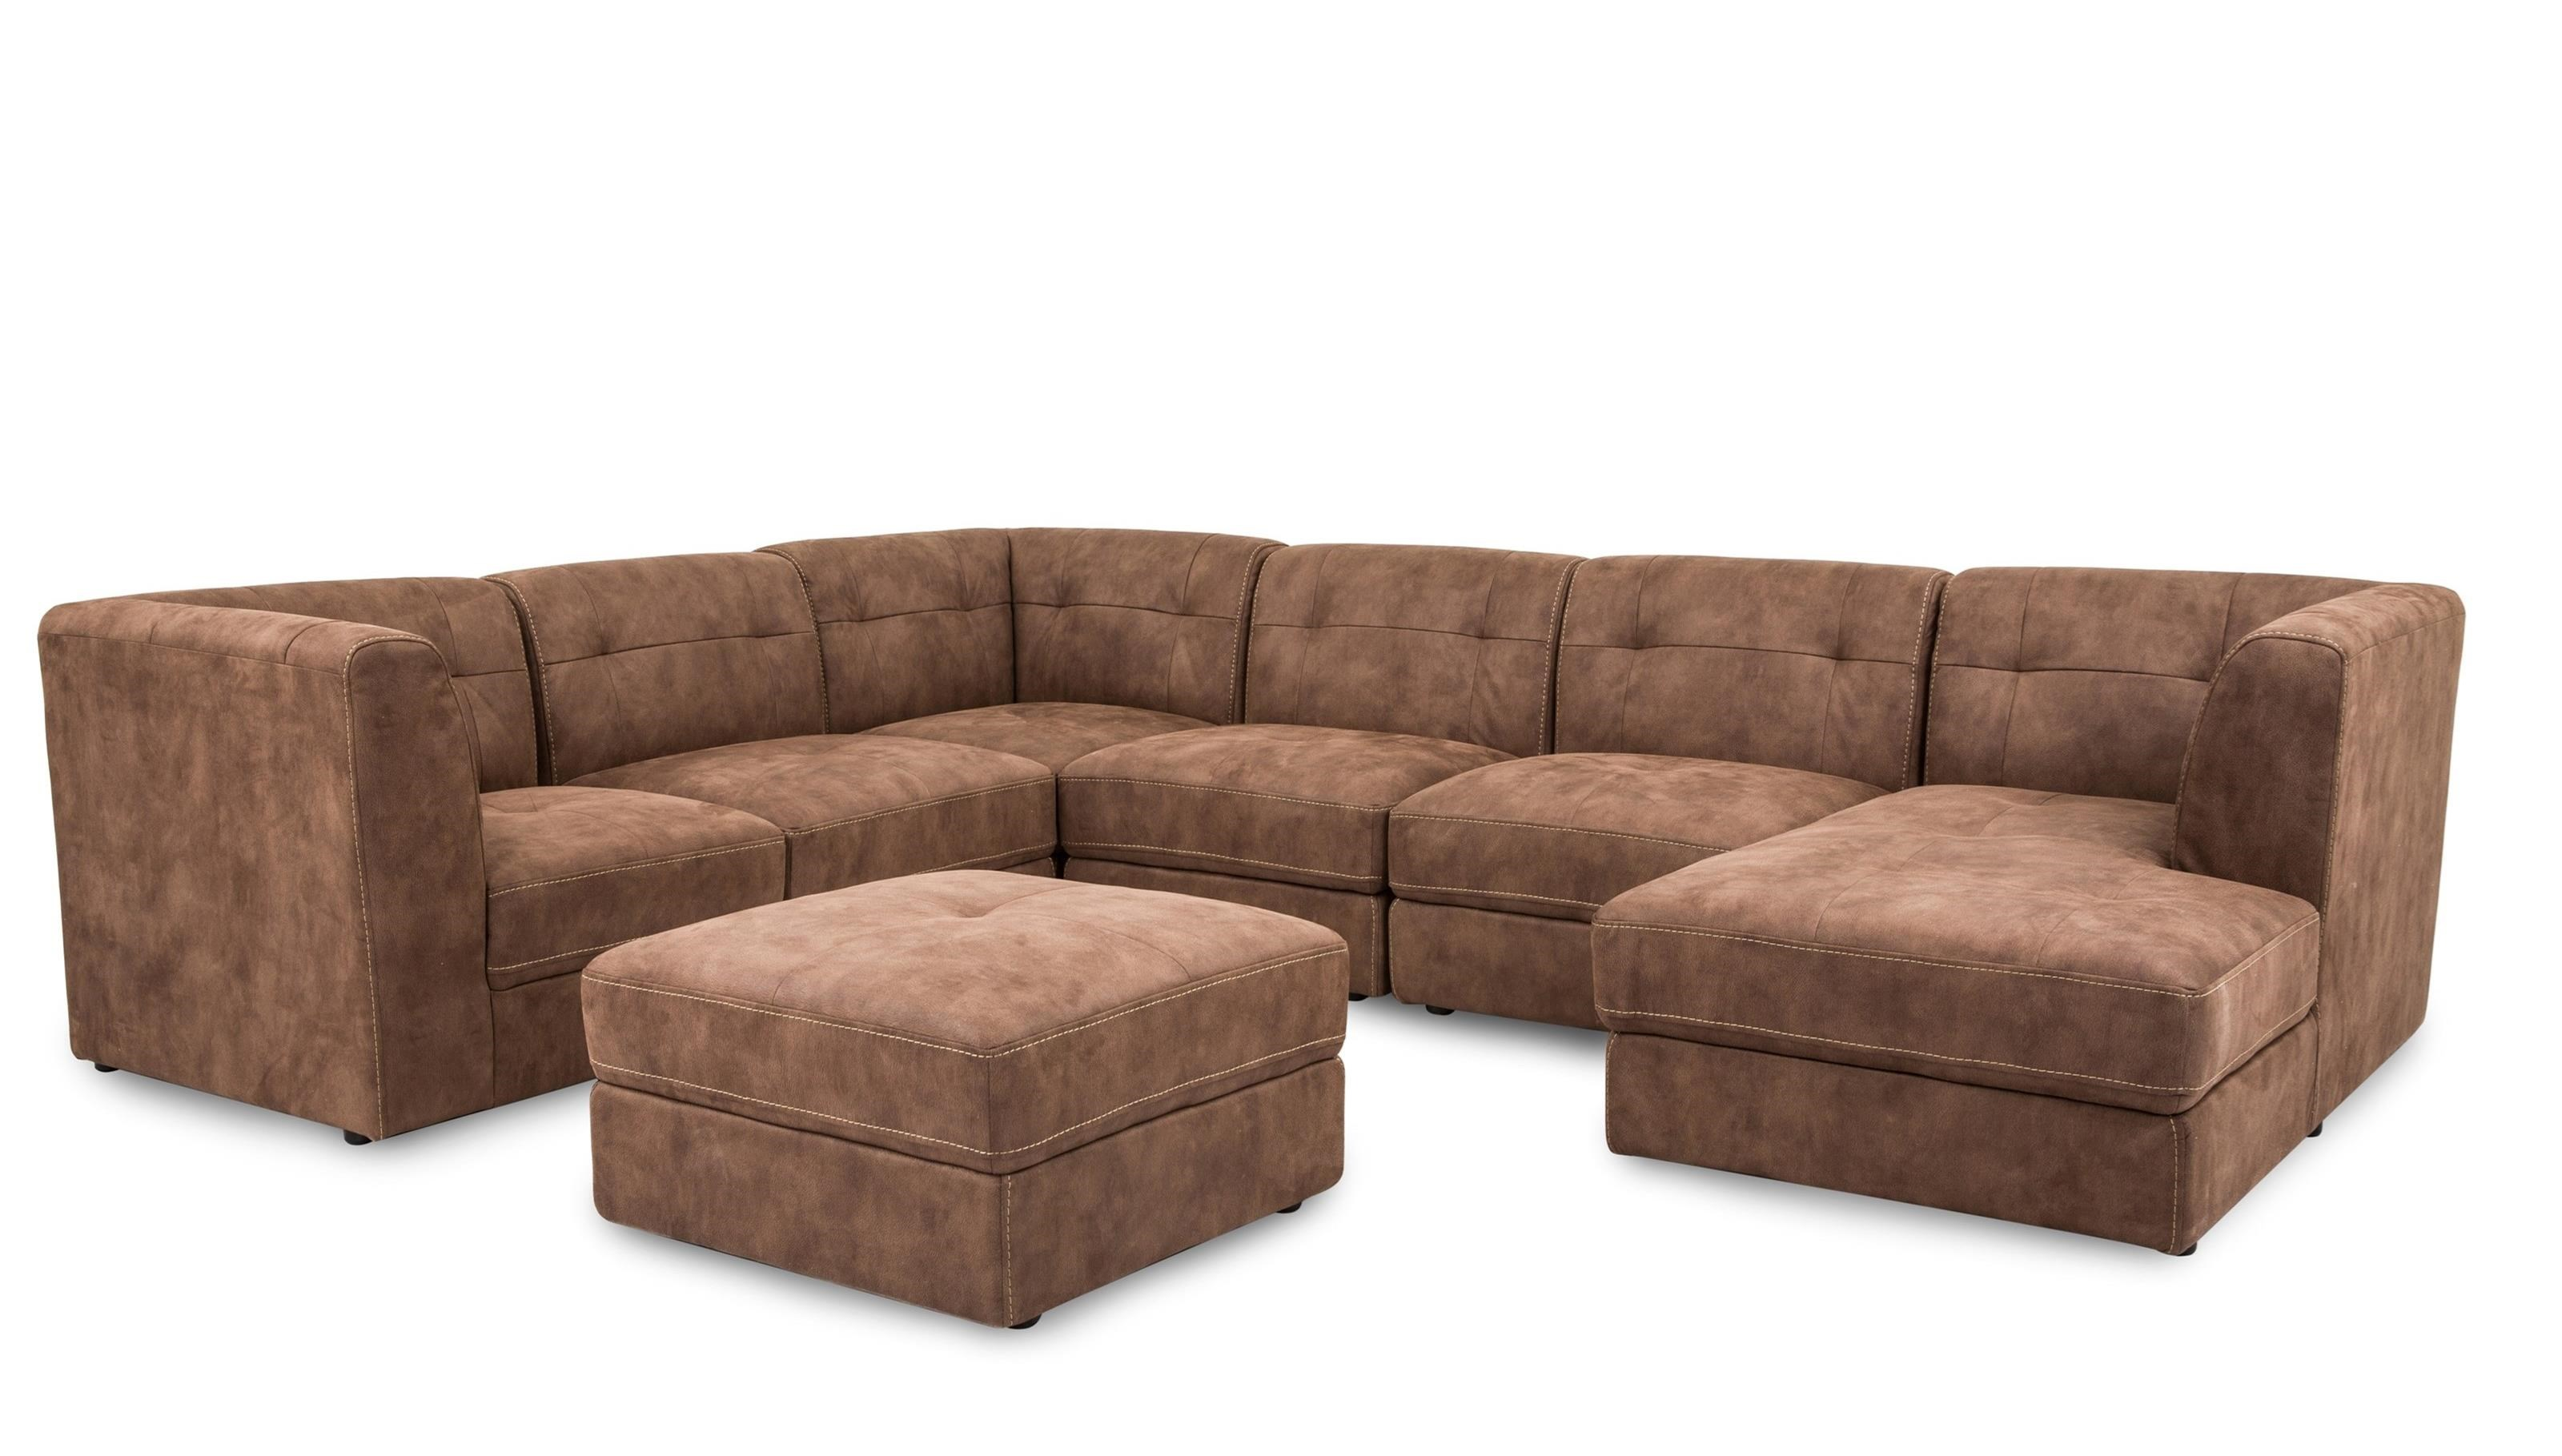 5157 Modular Sectional by Cheers at Lagniappe Home Store